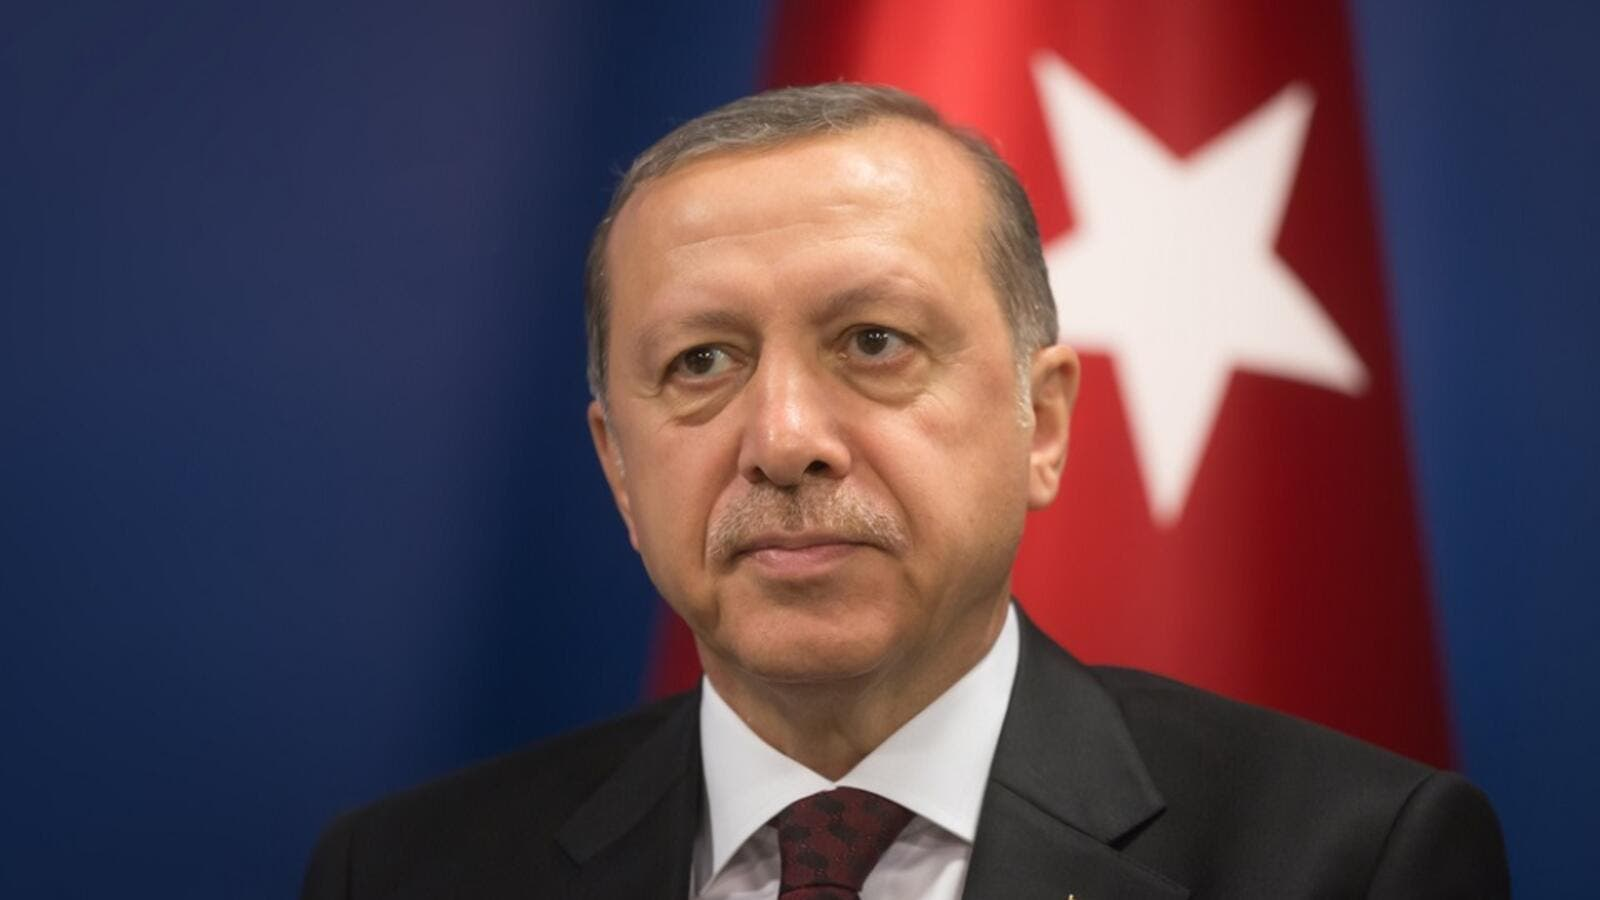 Erdogan noted that Turkey, Greece and the UK are the guarantor countries of Cyprus, and those countries are speaking as the guarantors.